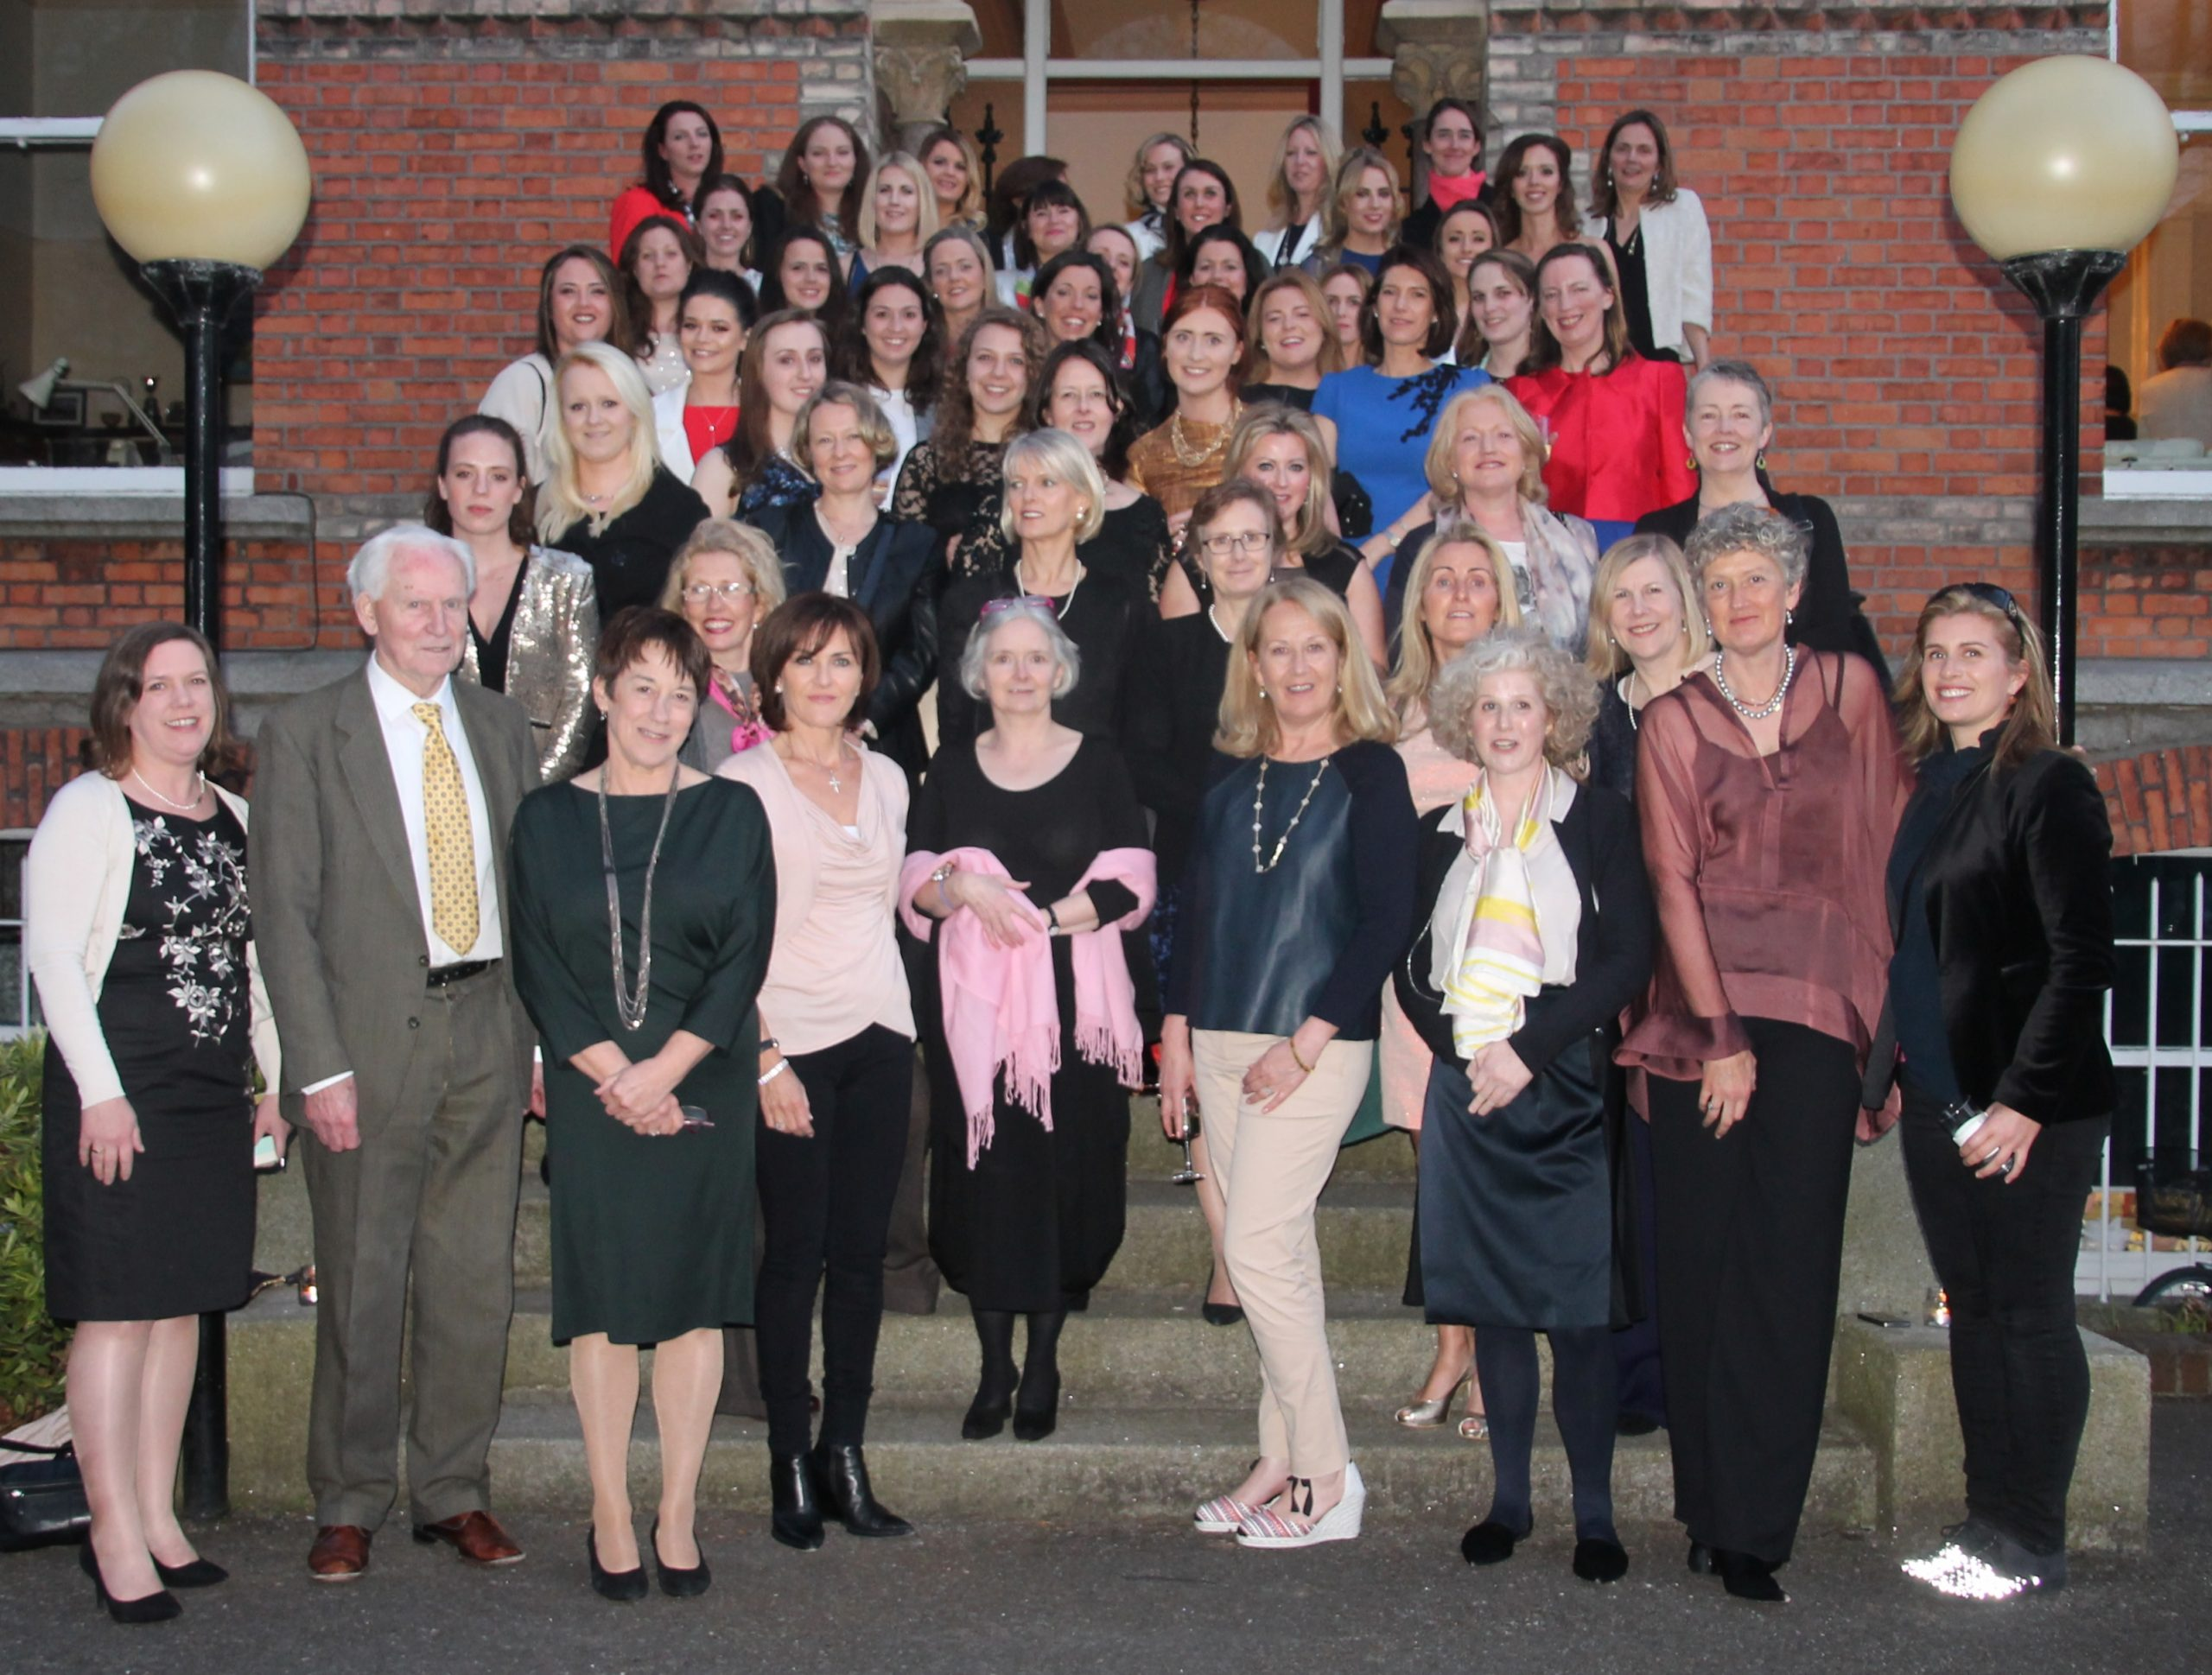 Mr. Kelleher and Ann Sheppard joined by 40 years worth of Conlethian women! (1)